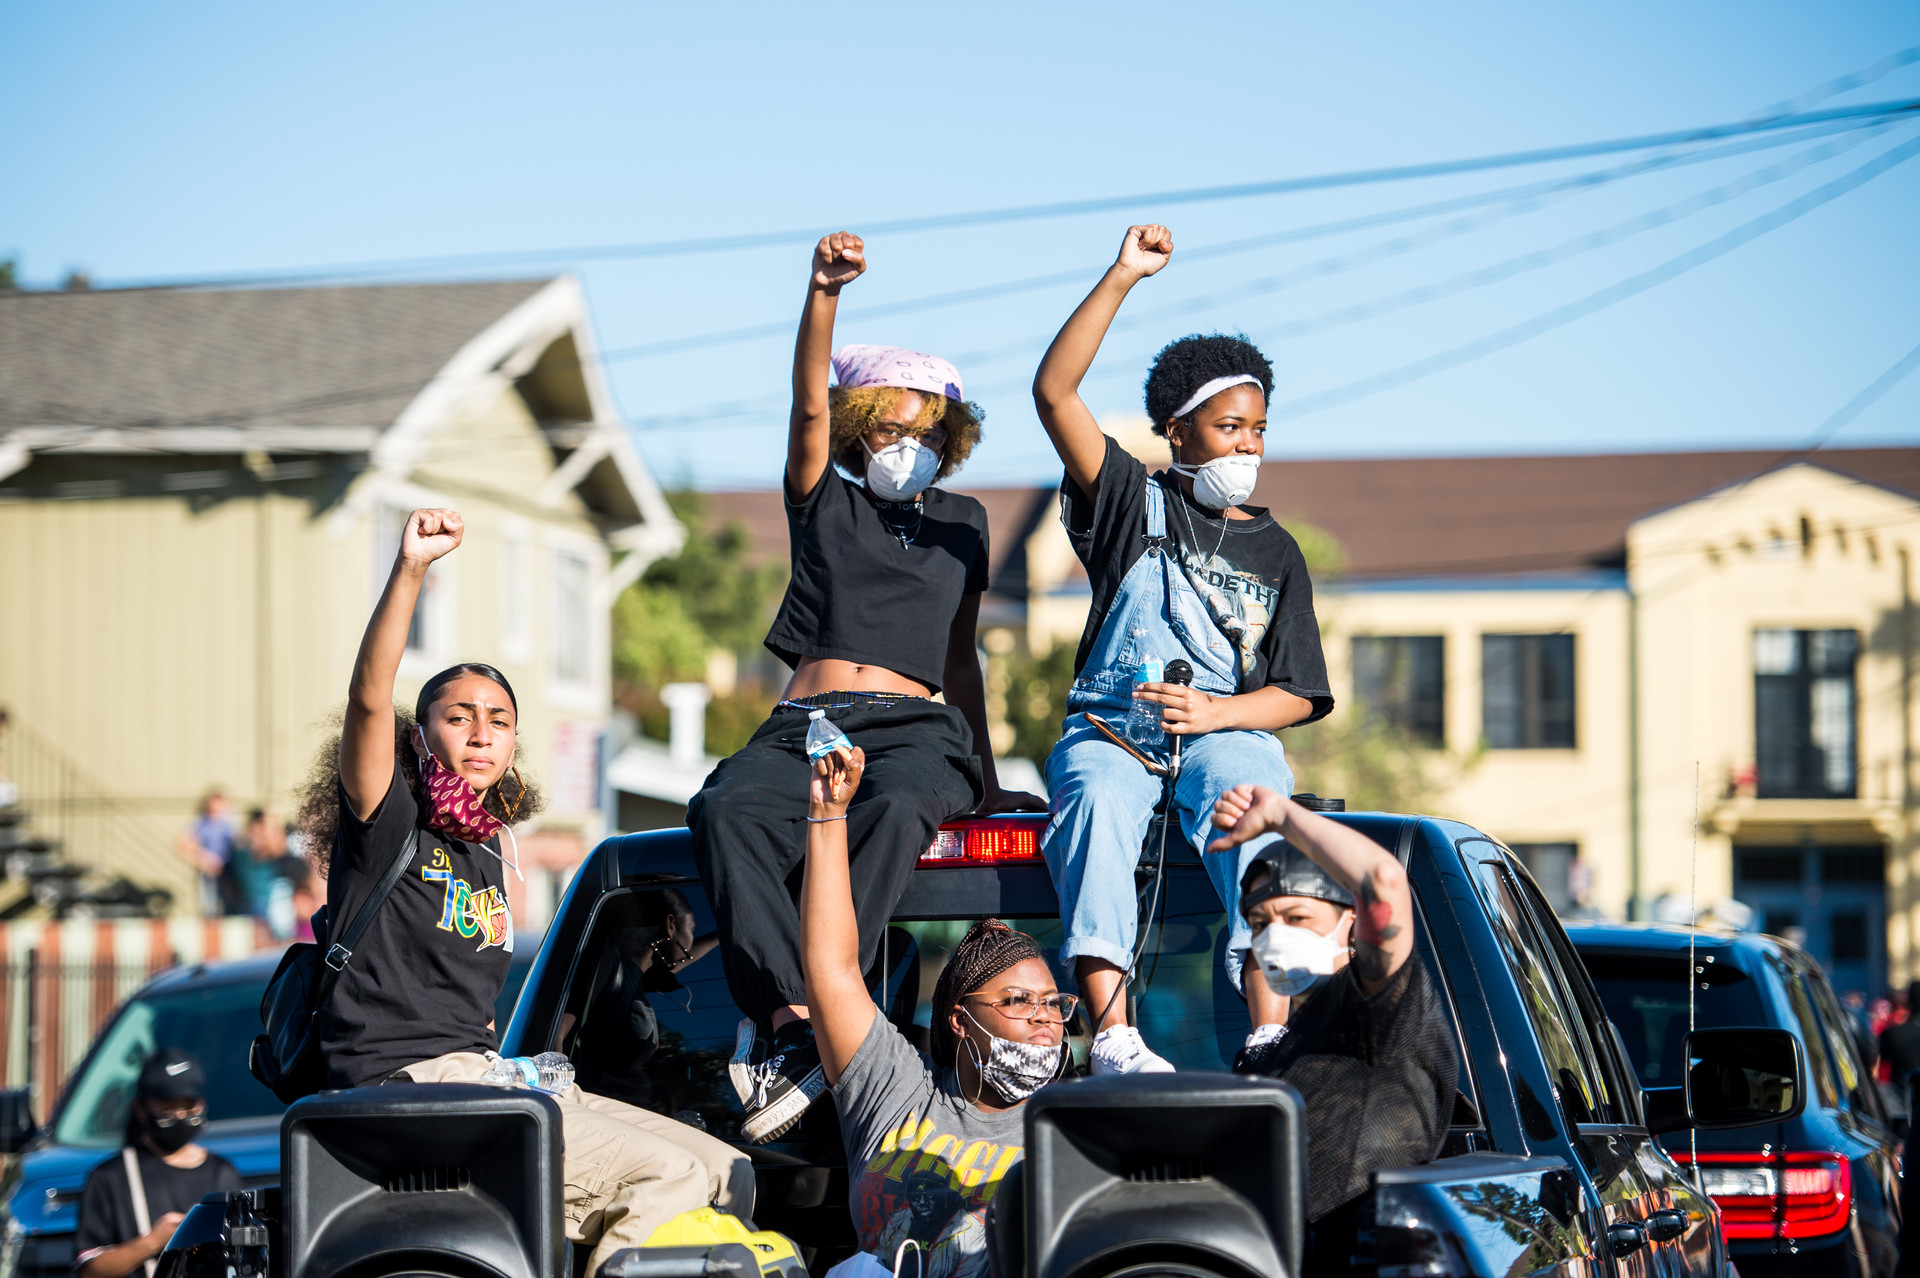 Isha Clarke (left) and other members of Oakland Black Youth Activists take part in a march for Erik Salgado, who was shot and killed by California Highway Patrol officers on June 6.